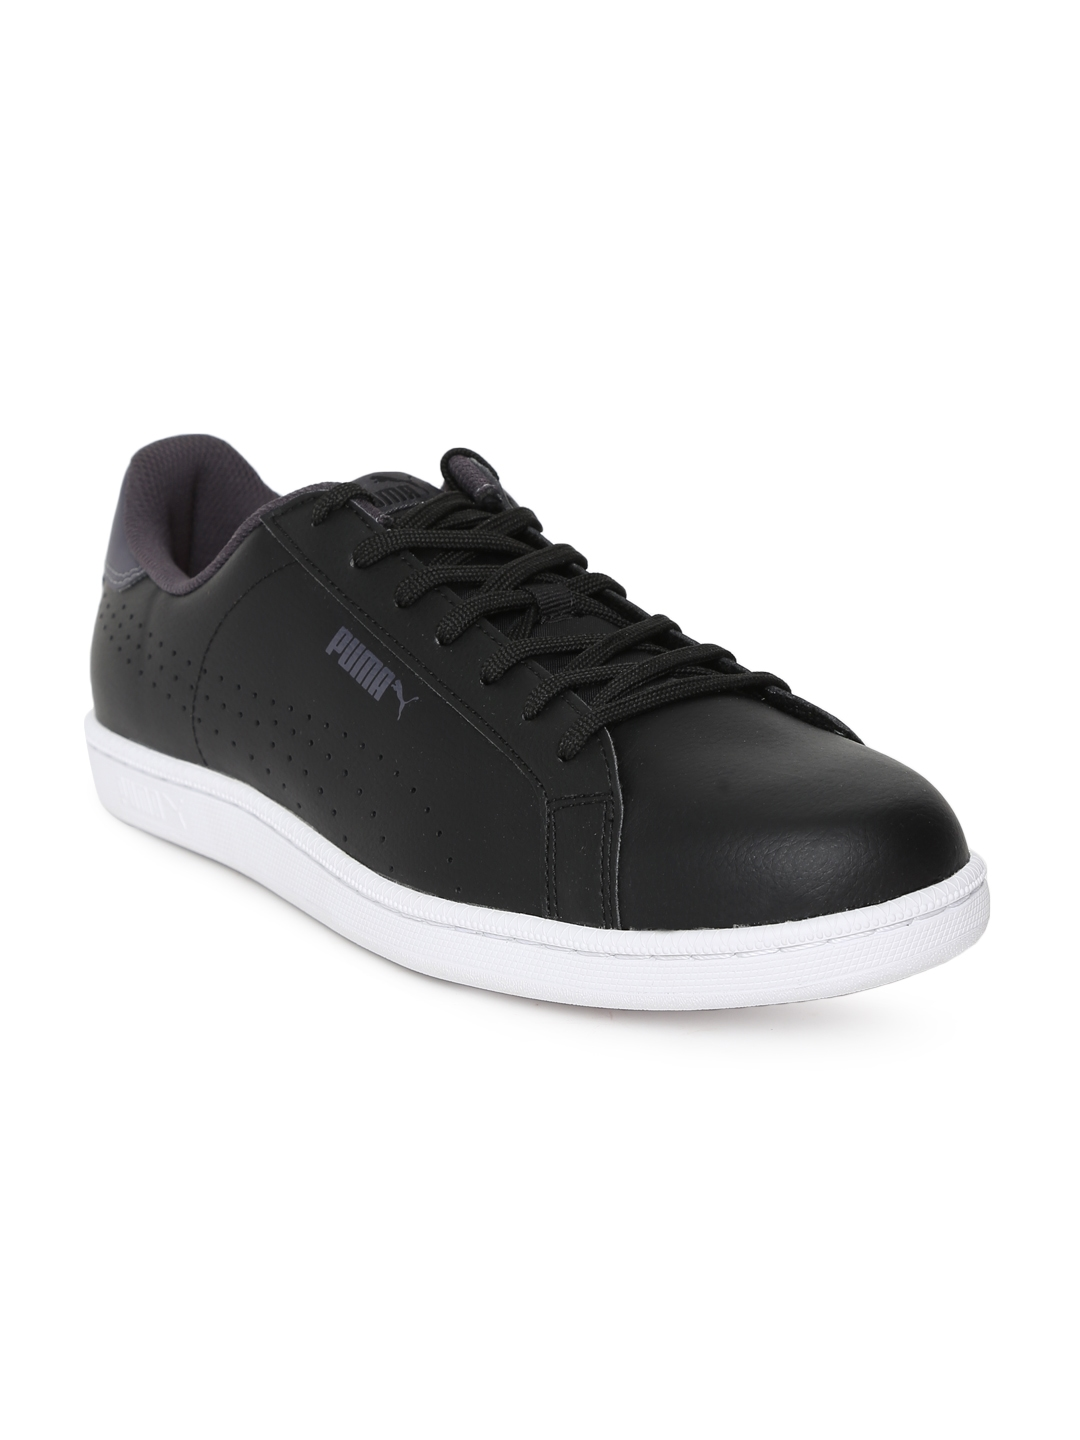 Buy Puma Men Black Smash Leather Sneakers Casual Shoes for